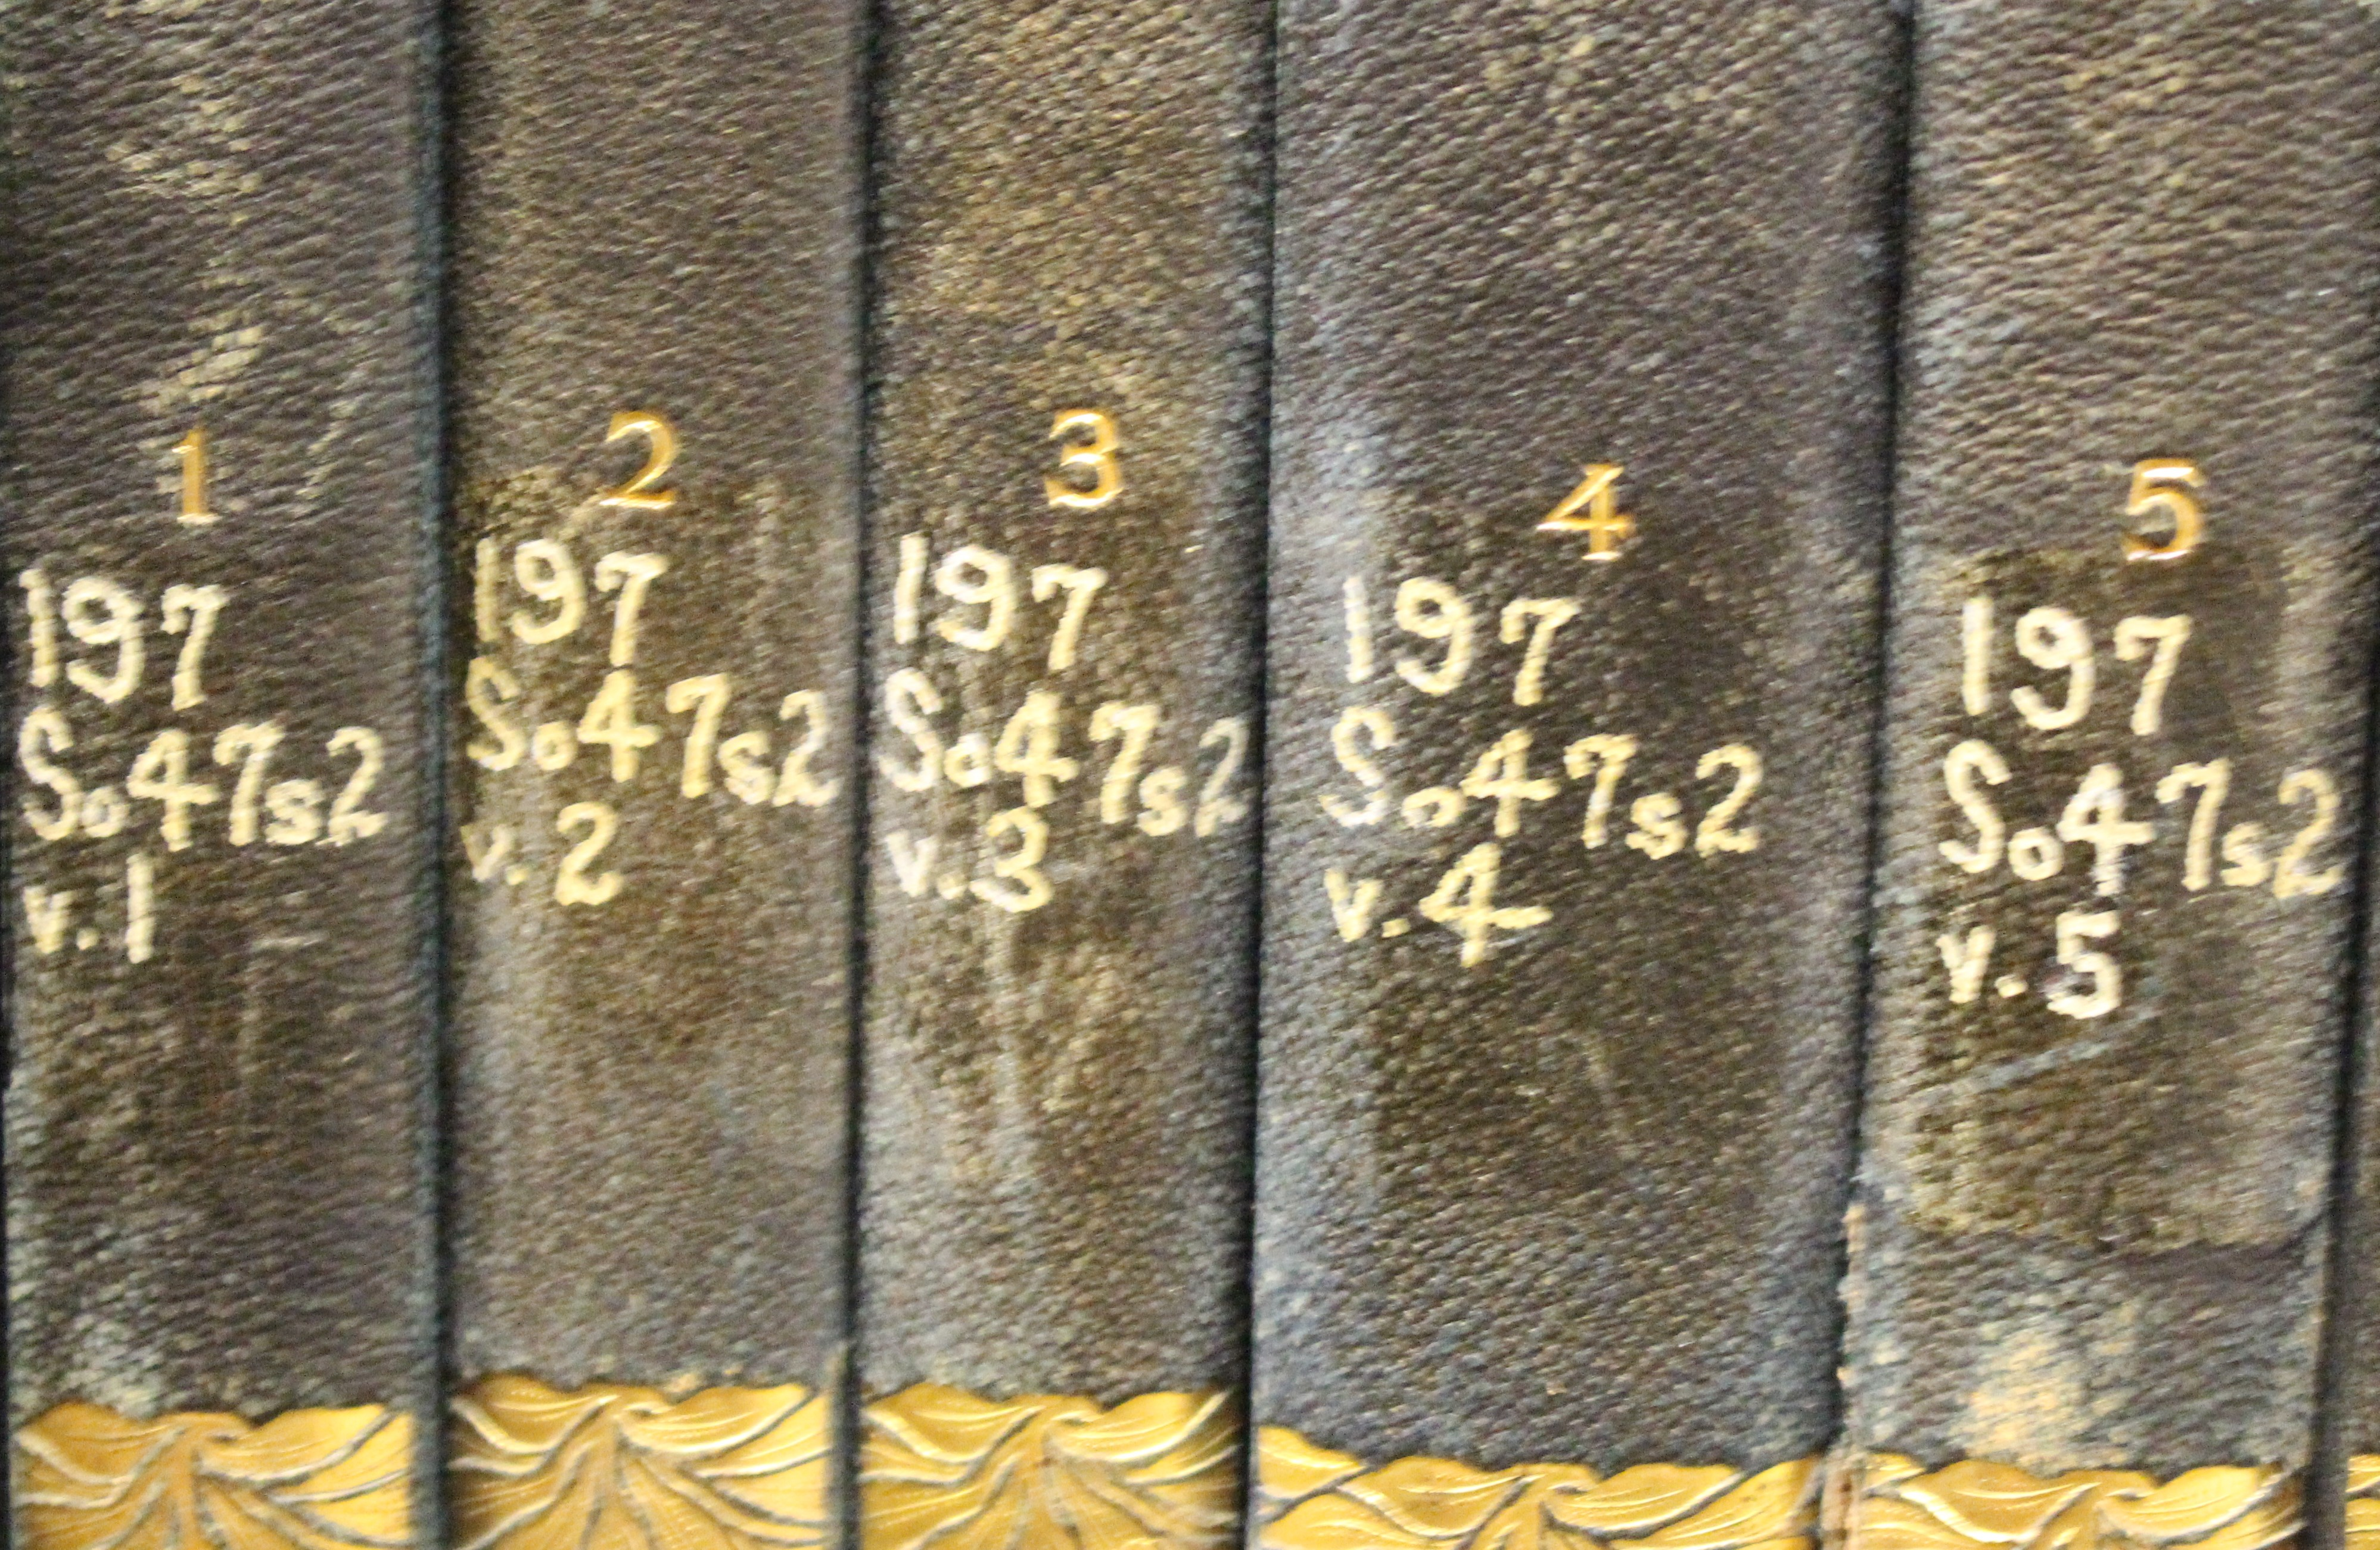 Books with Dewey Decimal call numbers